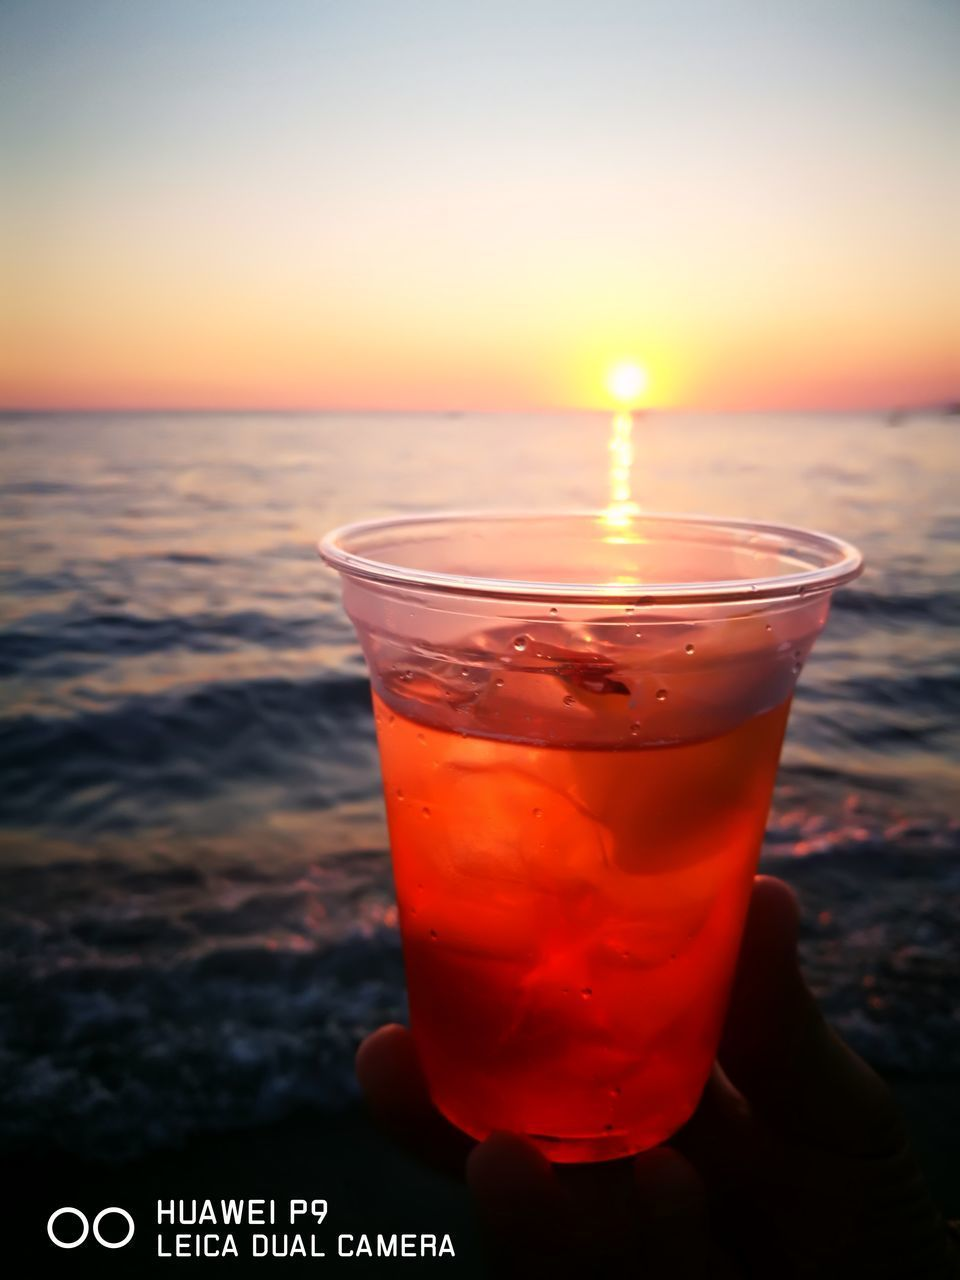 sky, drink, refreshment, sunset, sea, food and drink, glass, orange color, water, beach, nature, focus on foreground, drinking glass, beauty in nature, household equipment, scenics - nature, close-up, horizon over water, freshness, outdoors, cocktail